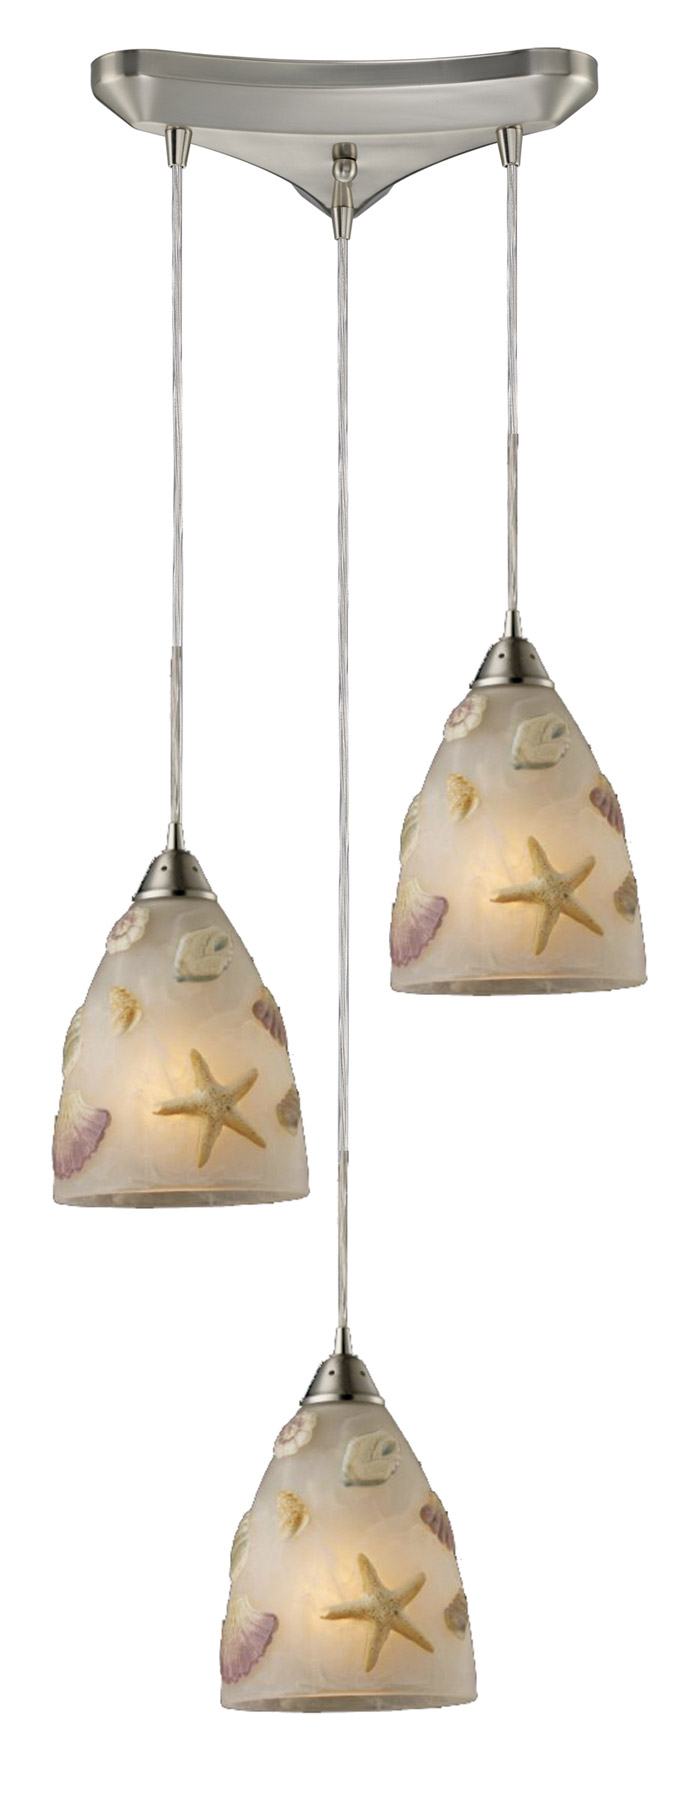 Lighting 200003 seashore multi pendant ceiling fixture elk lighting 200003 seashore multi pendant ceiling fixture arubaitofo Image collections